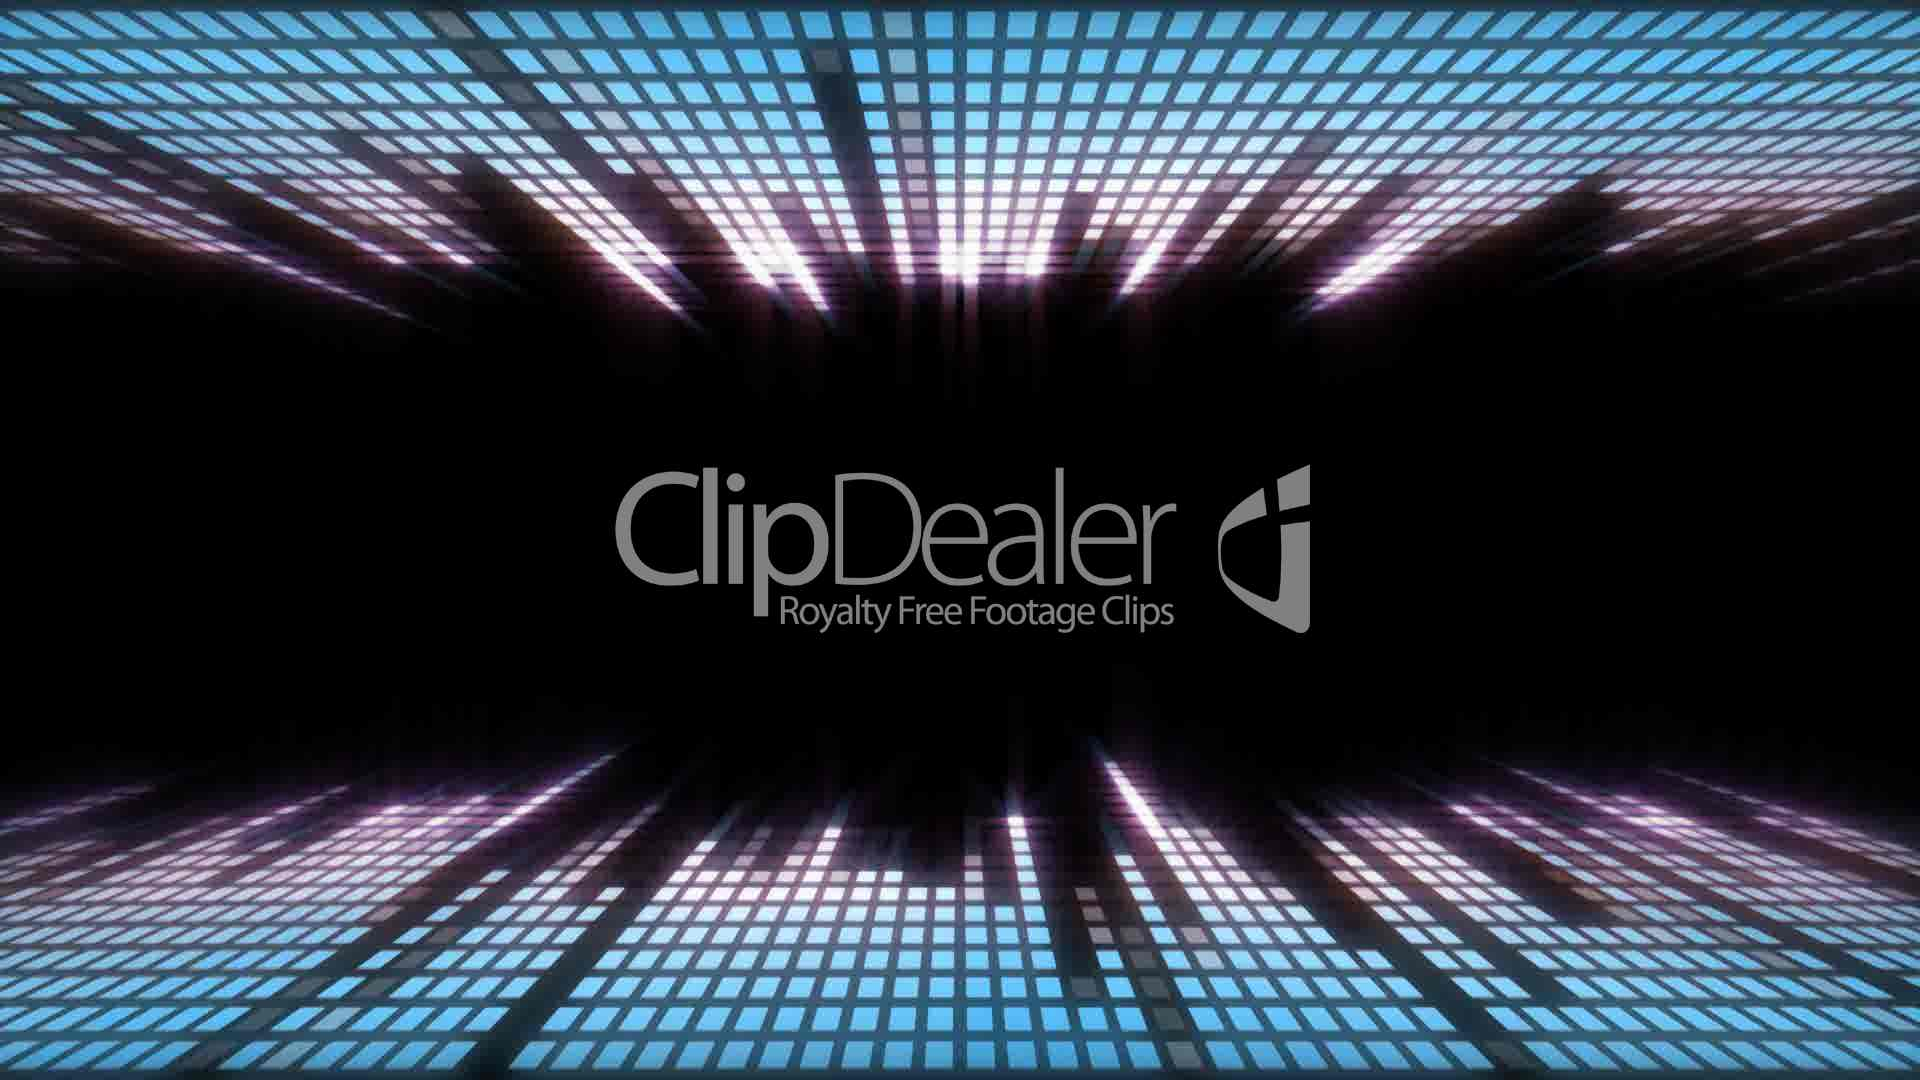 DJ Equalizer P5FF2: Royalty-free video and stock footage